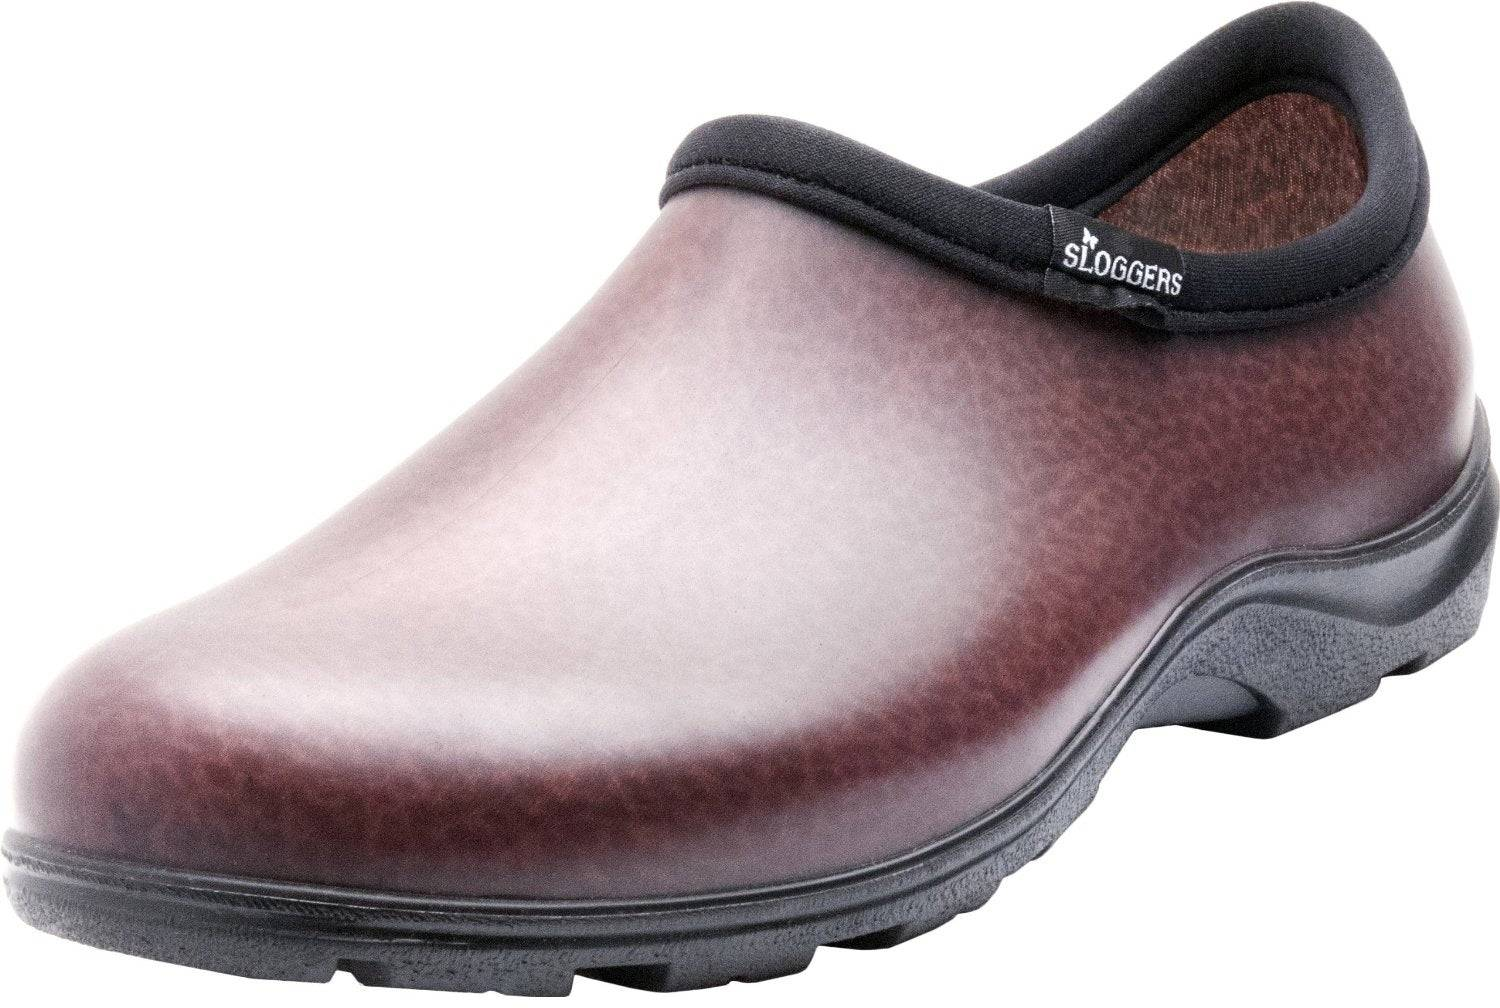 Sloggers 5301bn09 Men's Rain And Garden Shoes, Size 9, Brown